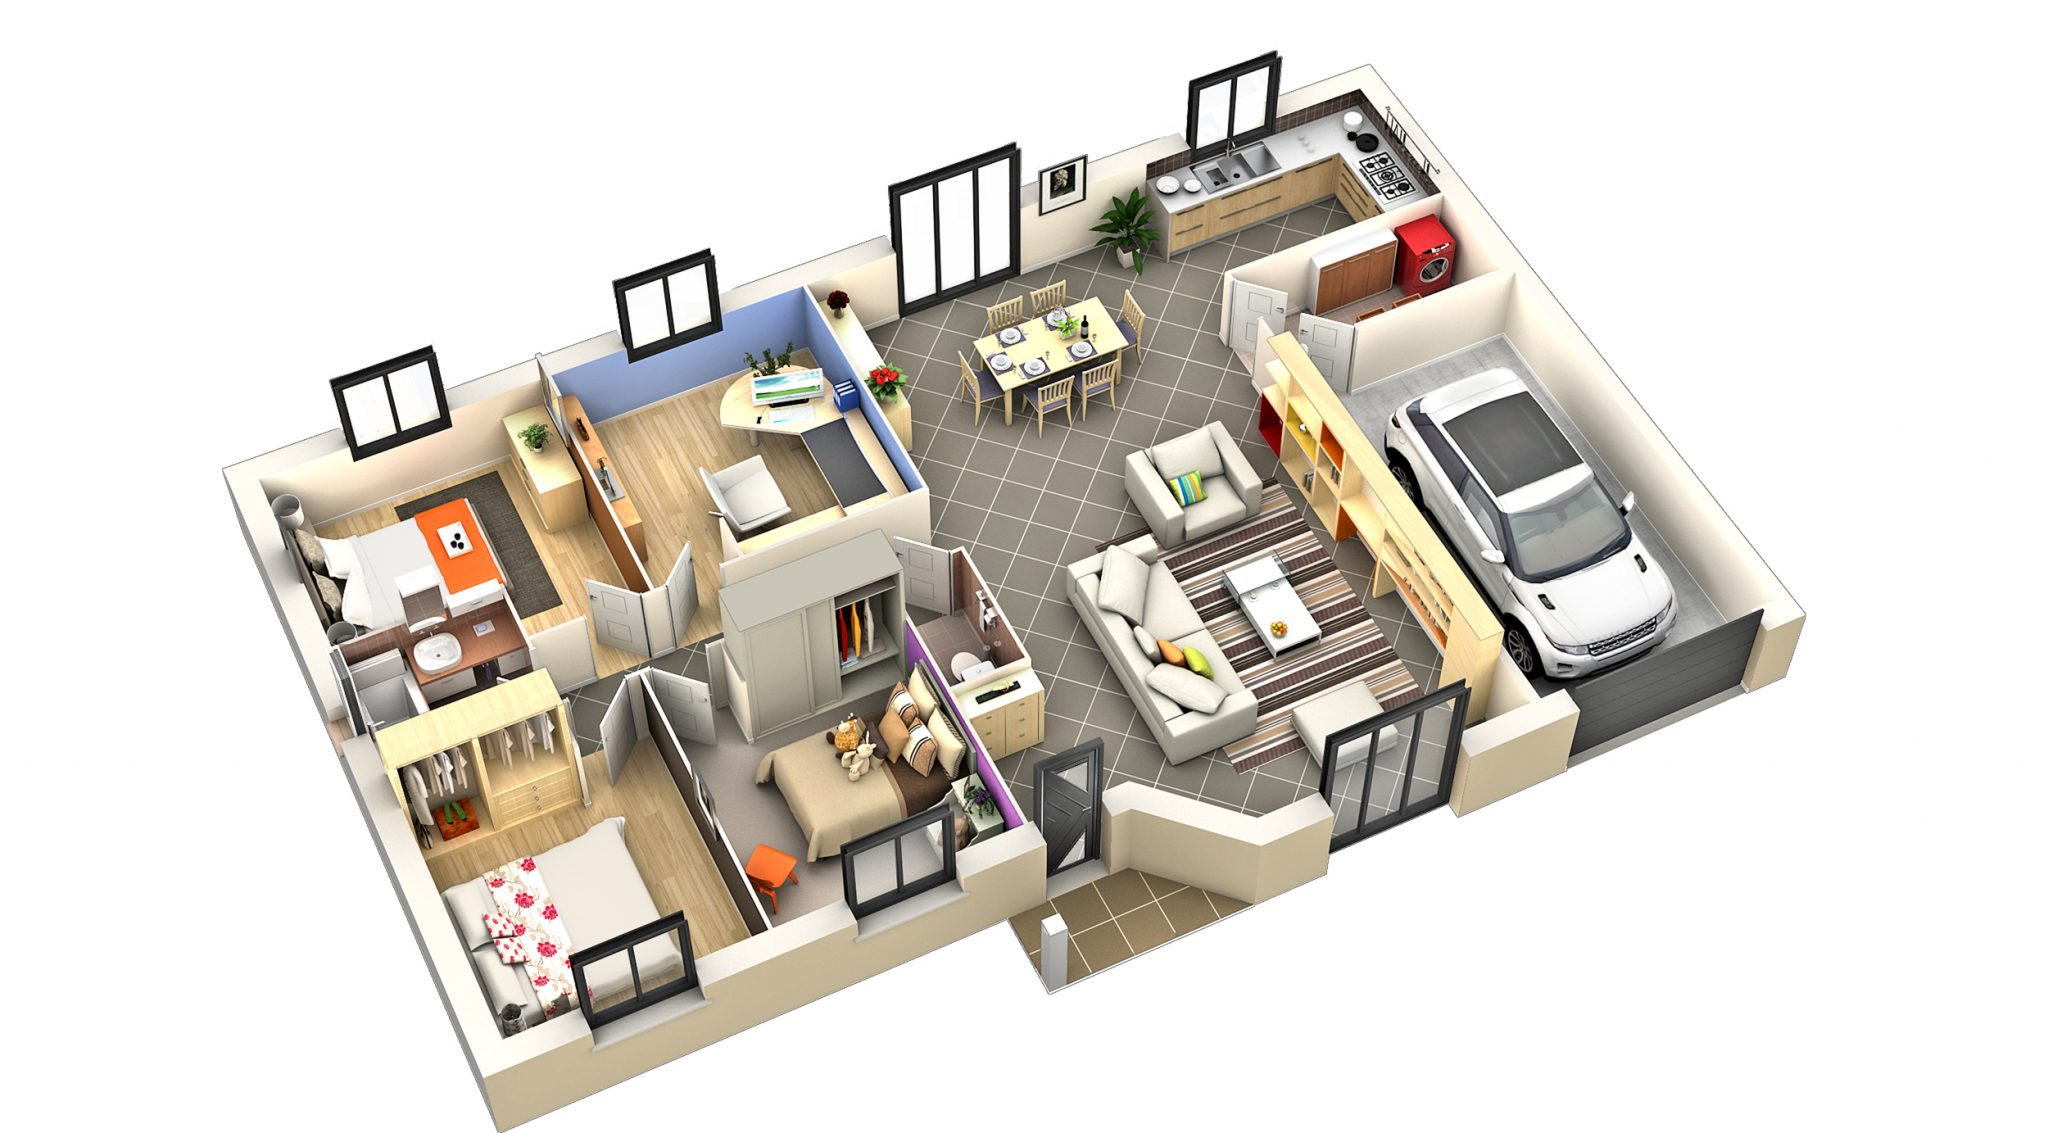 Plan interieur maison plain pied l 39 impression 3d for Plan interieur de maison